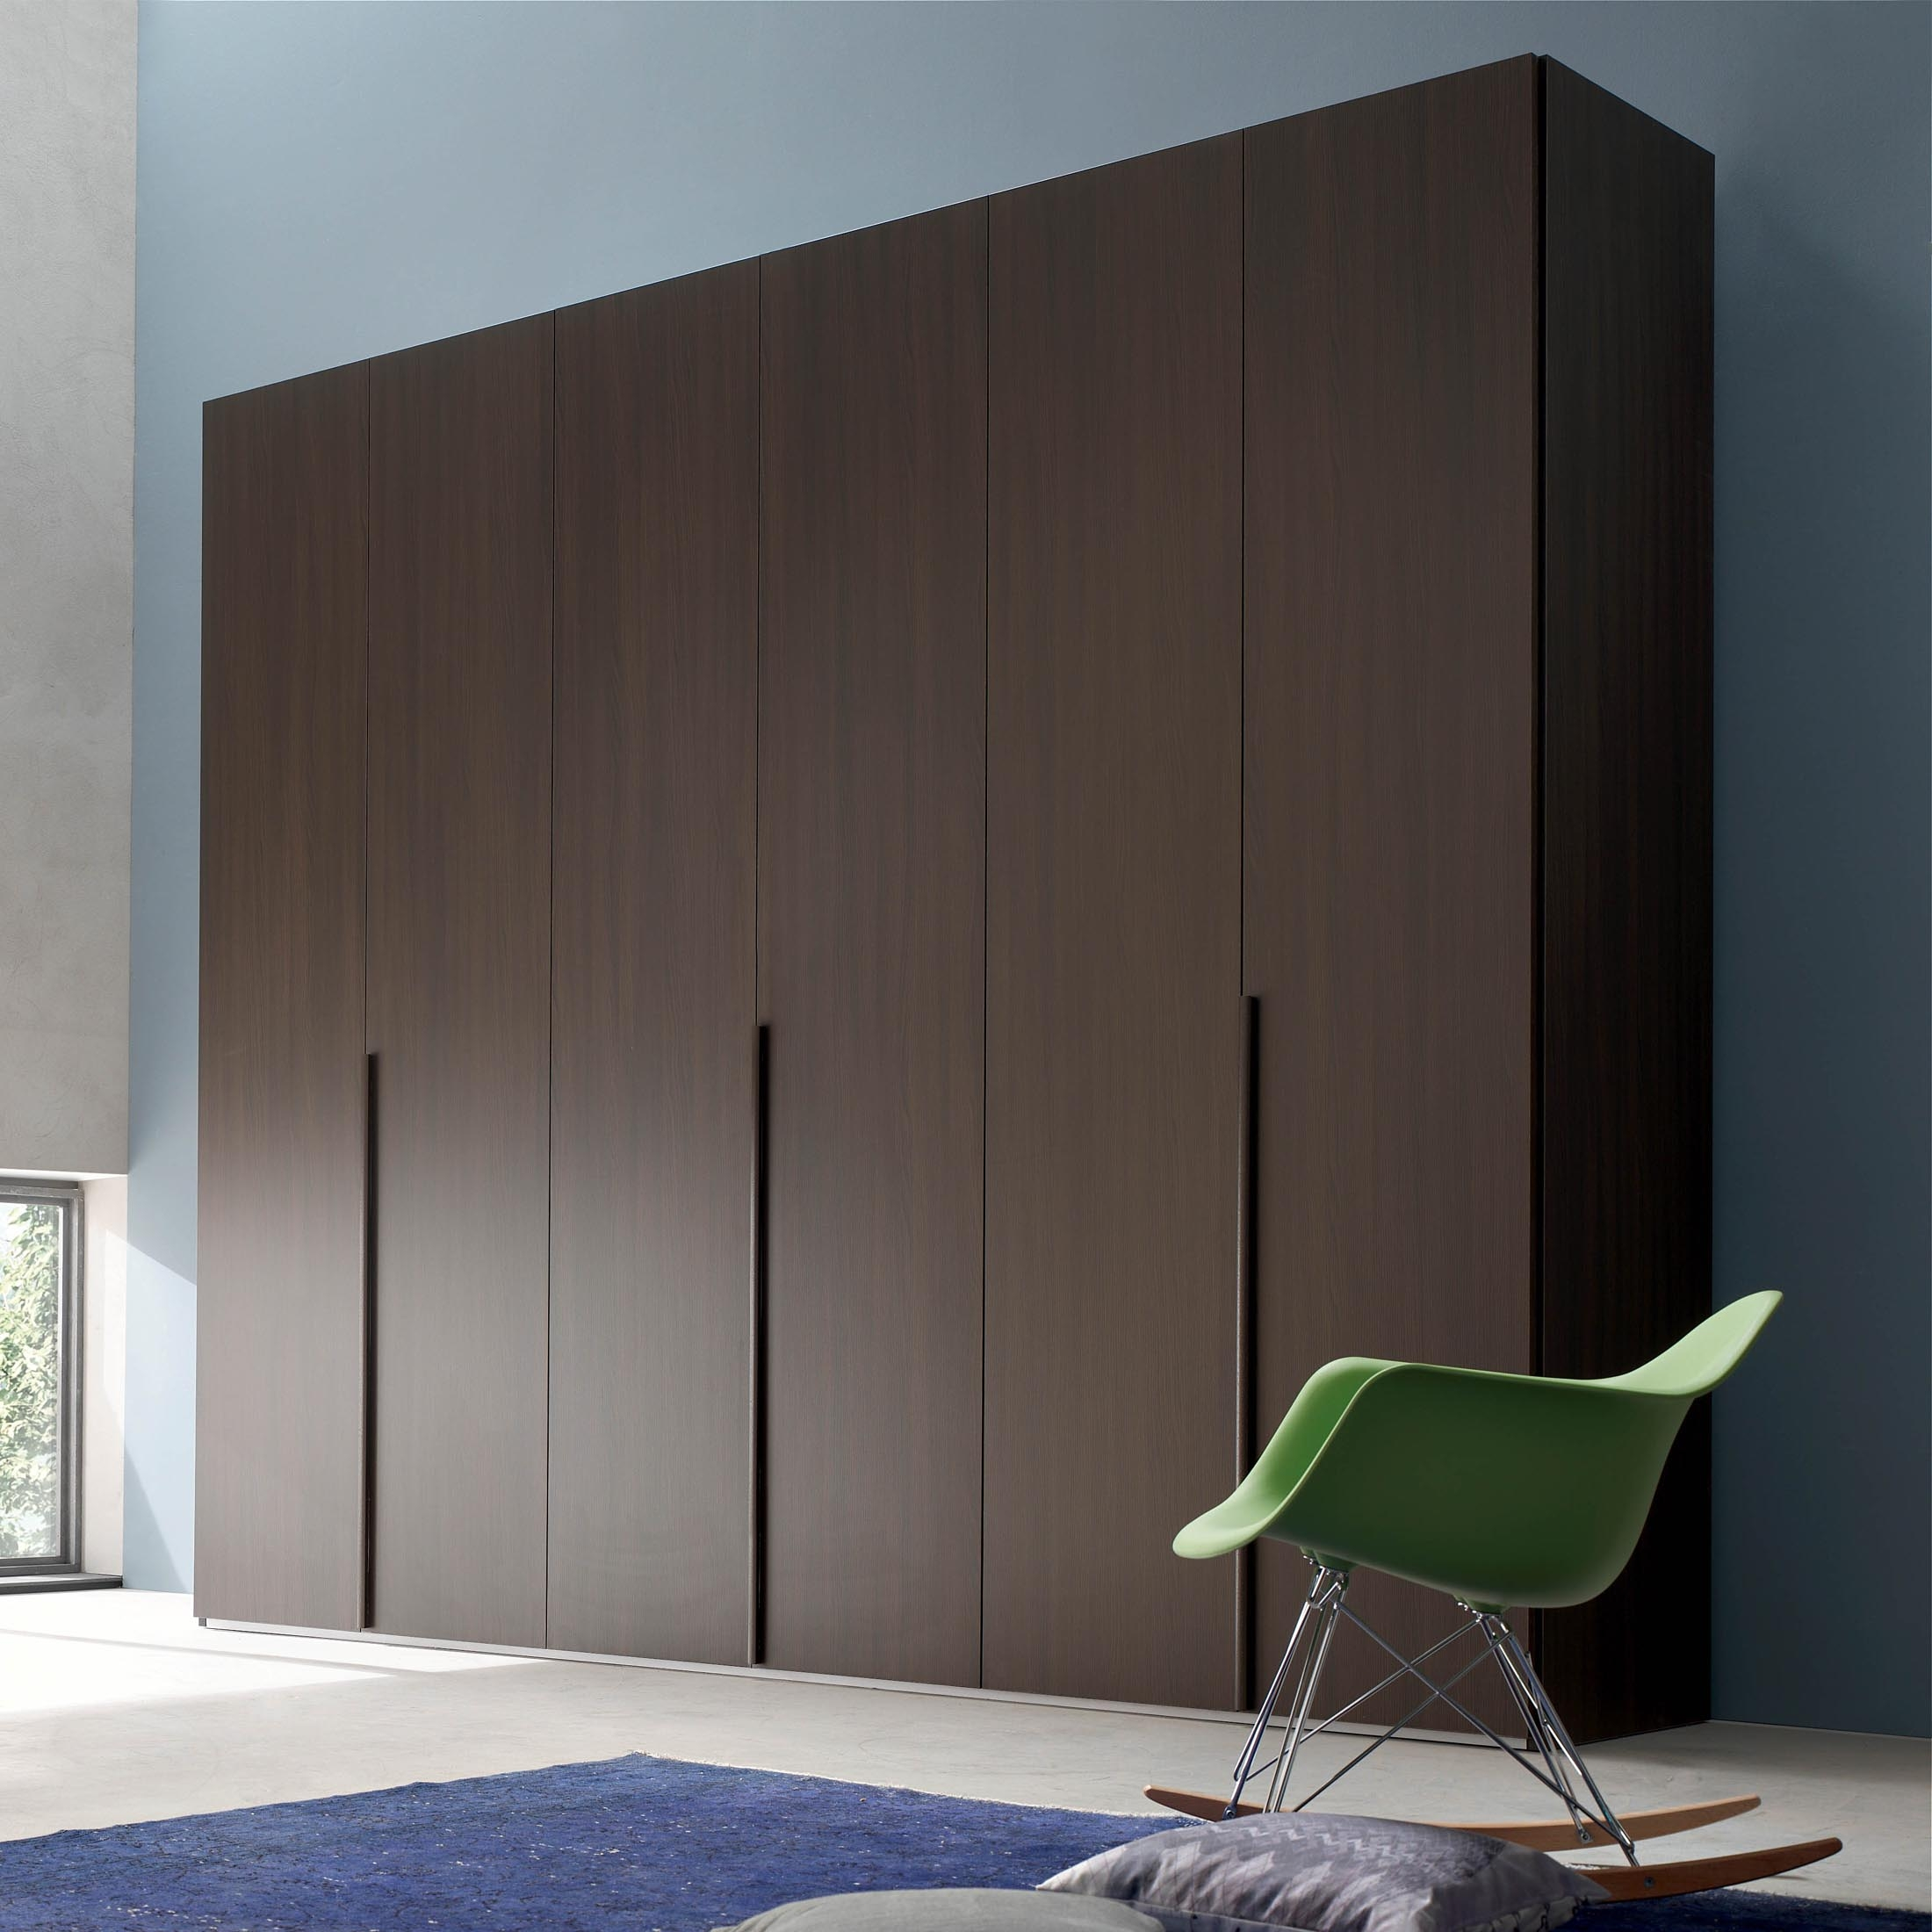 Wardrobe Wall Maronese Comes In Different Sizes 4 5 6 Door Throughout Wall Wardrobes (View 13 of 15)